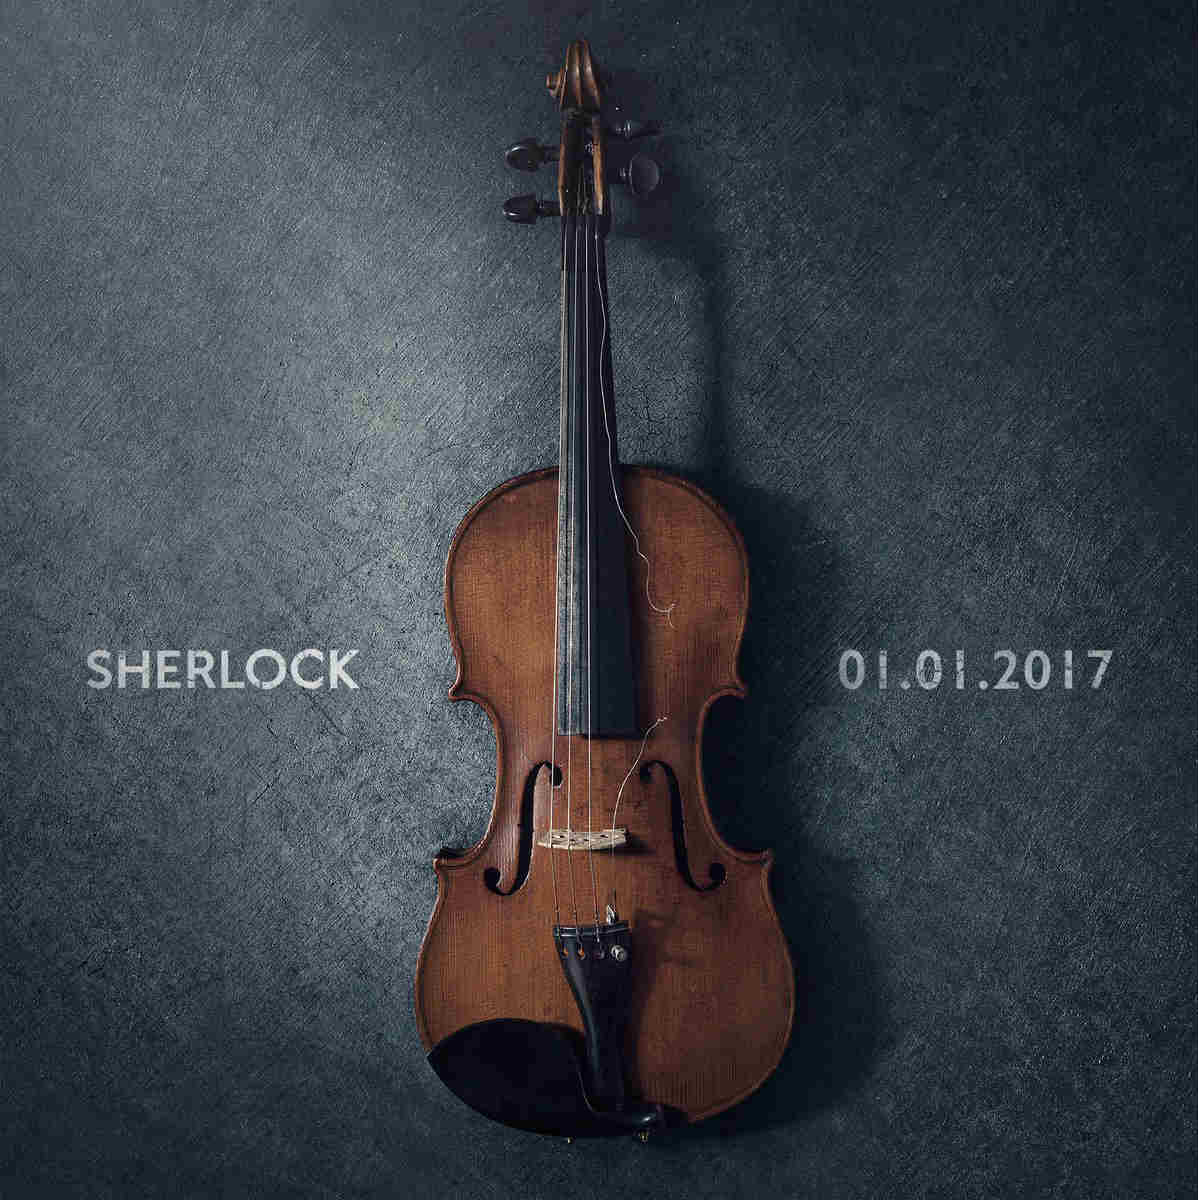 Sherlock Season 4 | Facebook Image For InUth.com